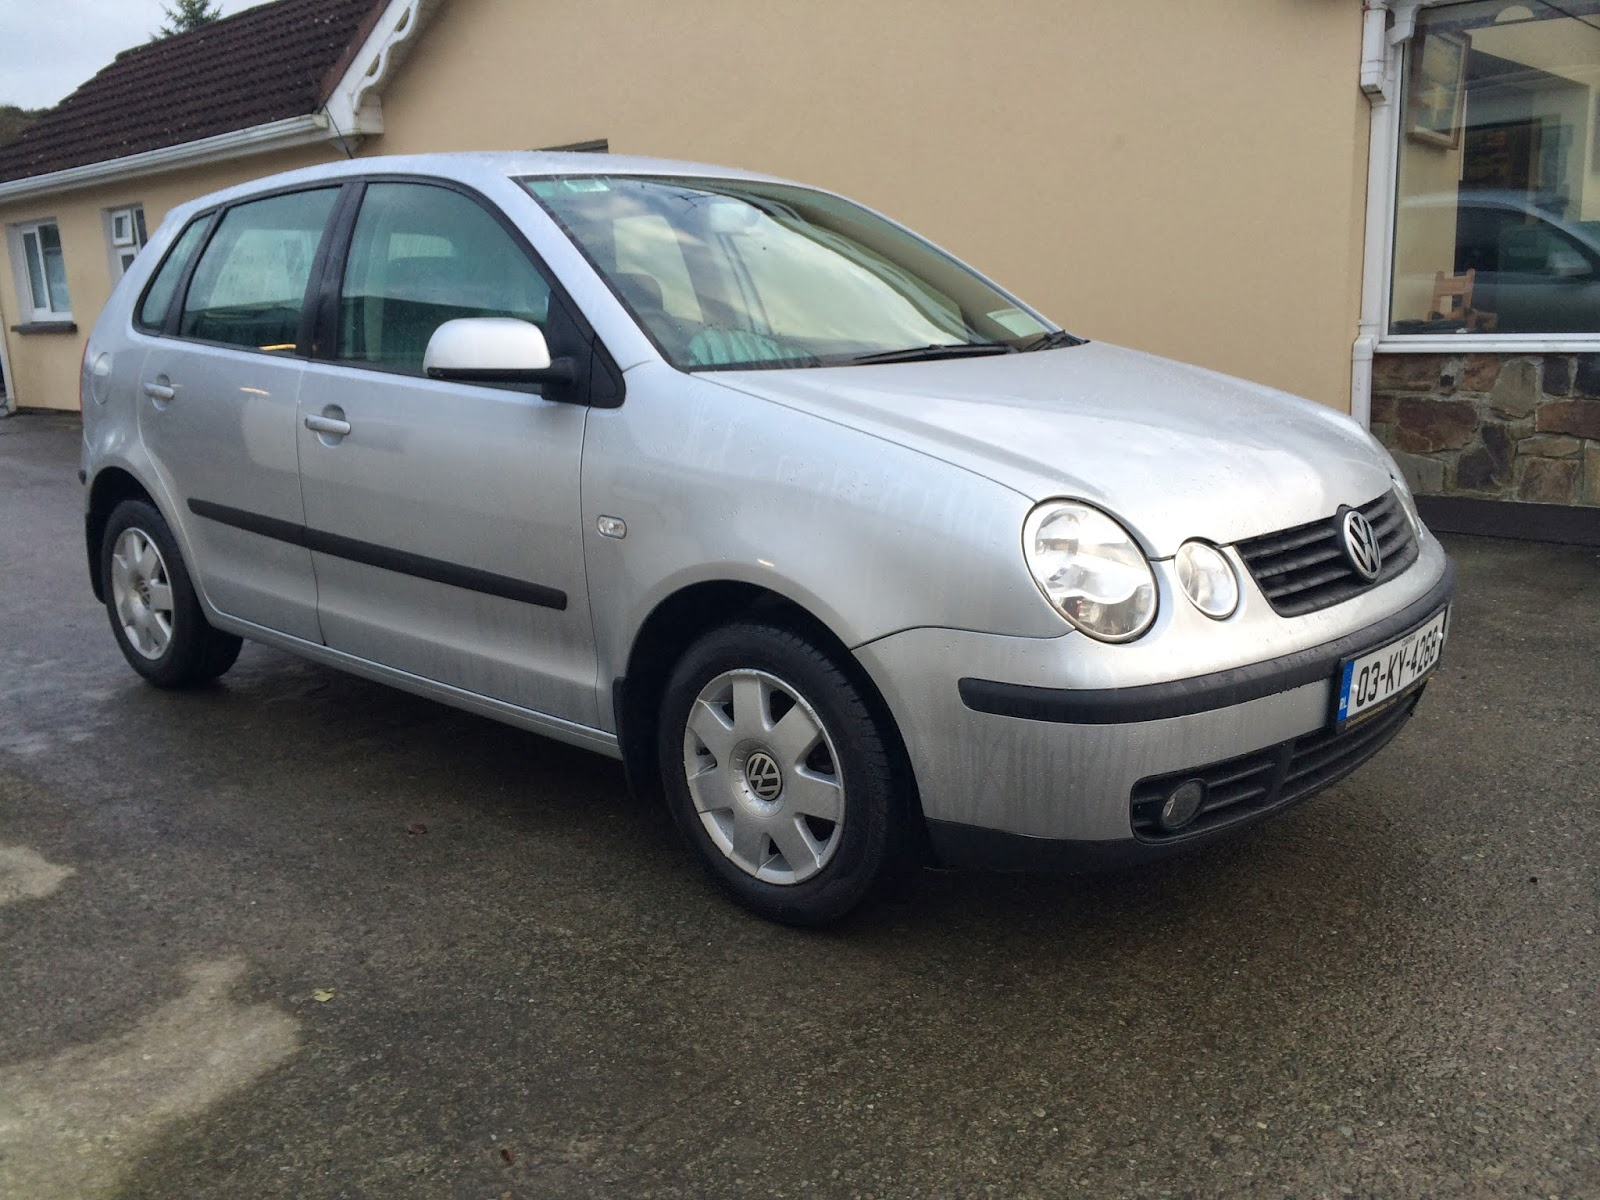 john o brien car sales clonakilty 2003 volkswagen polo 1. Black Bedroom Furniture Sets. Home Design Ideas